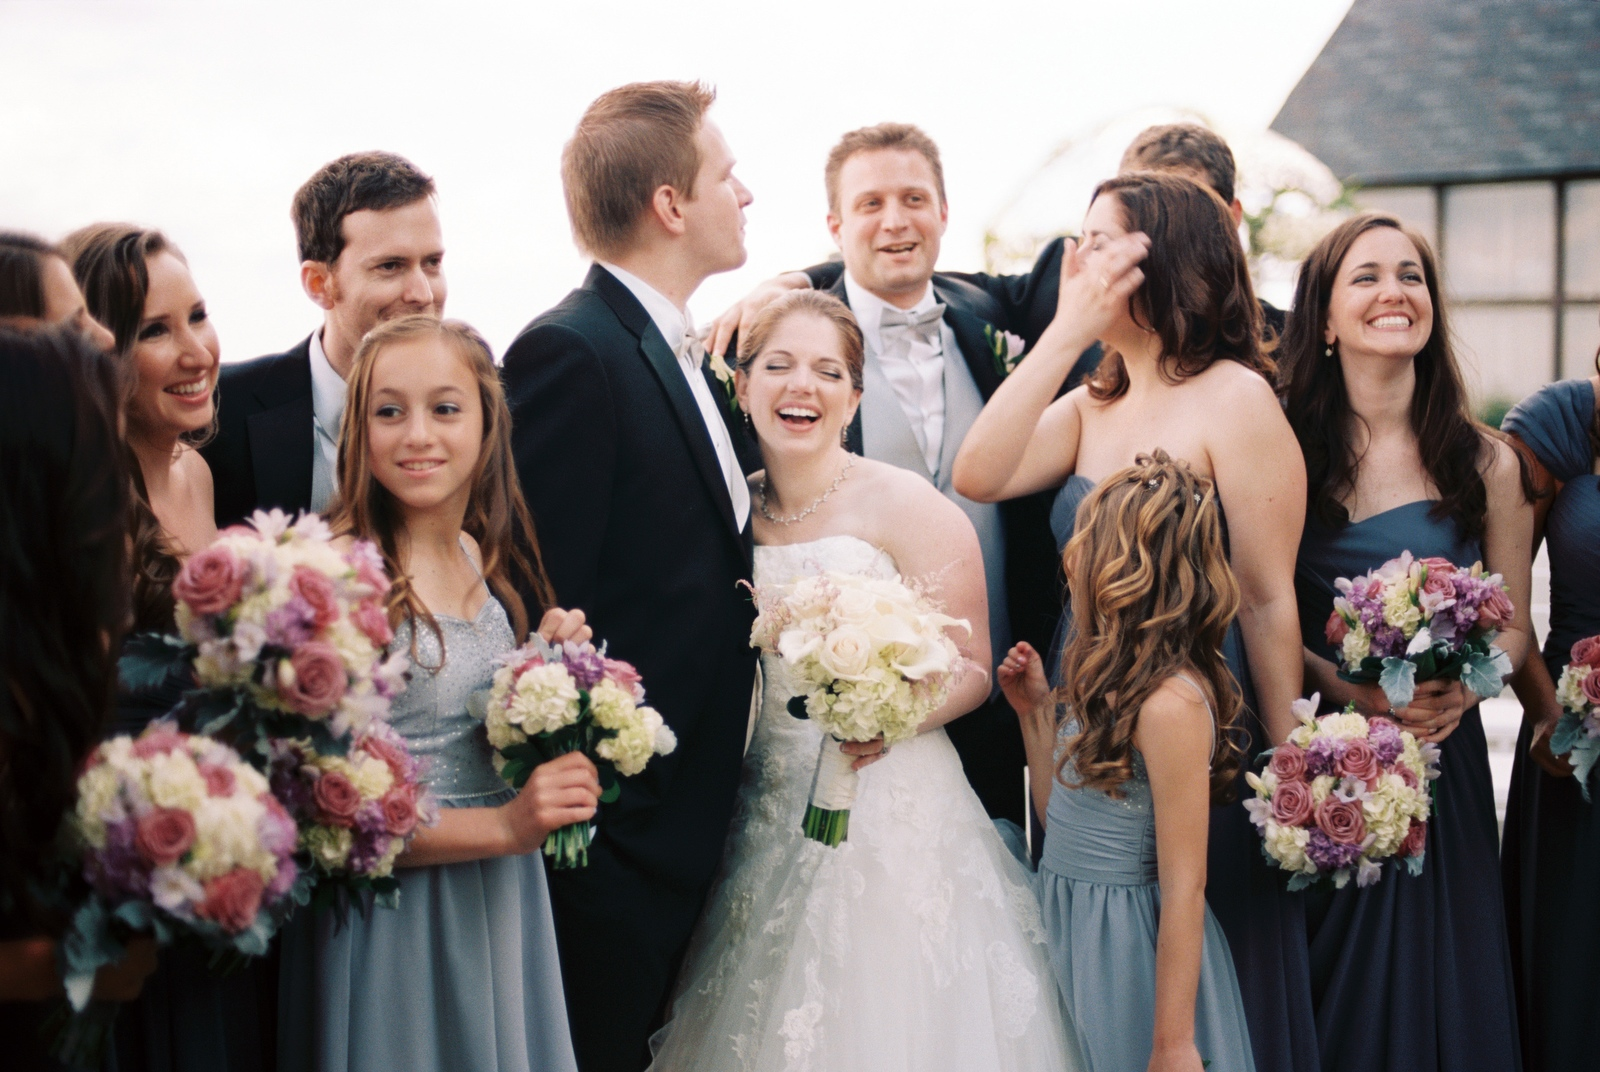 mamaroneck beach yacht club wedding party by wendy g photography